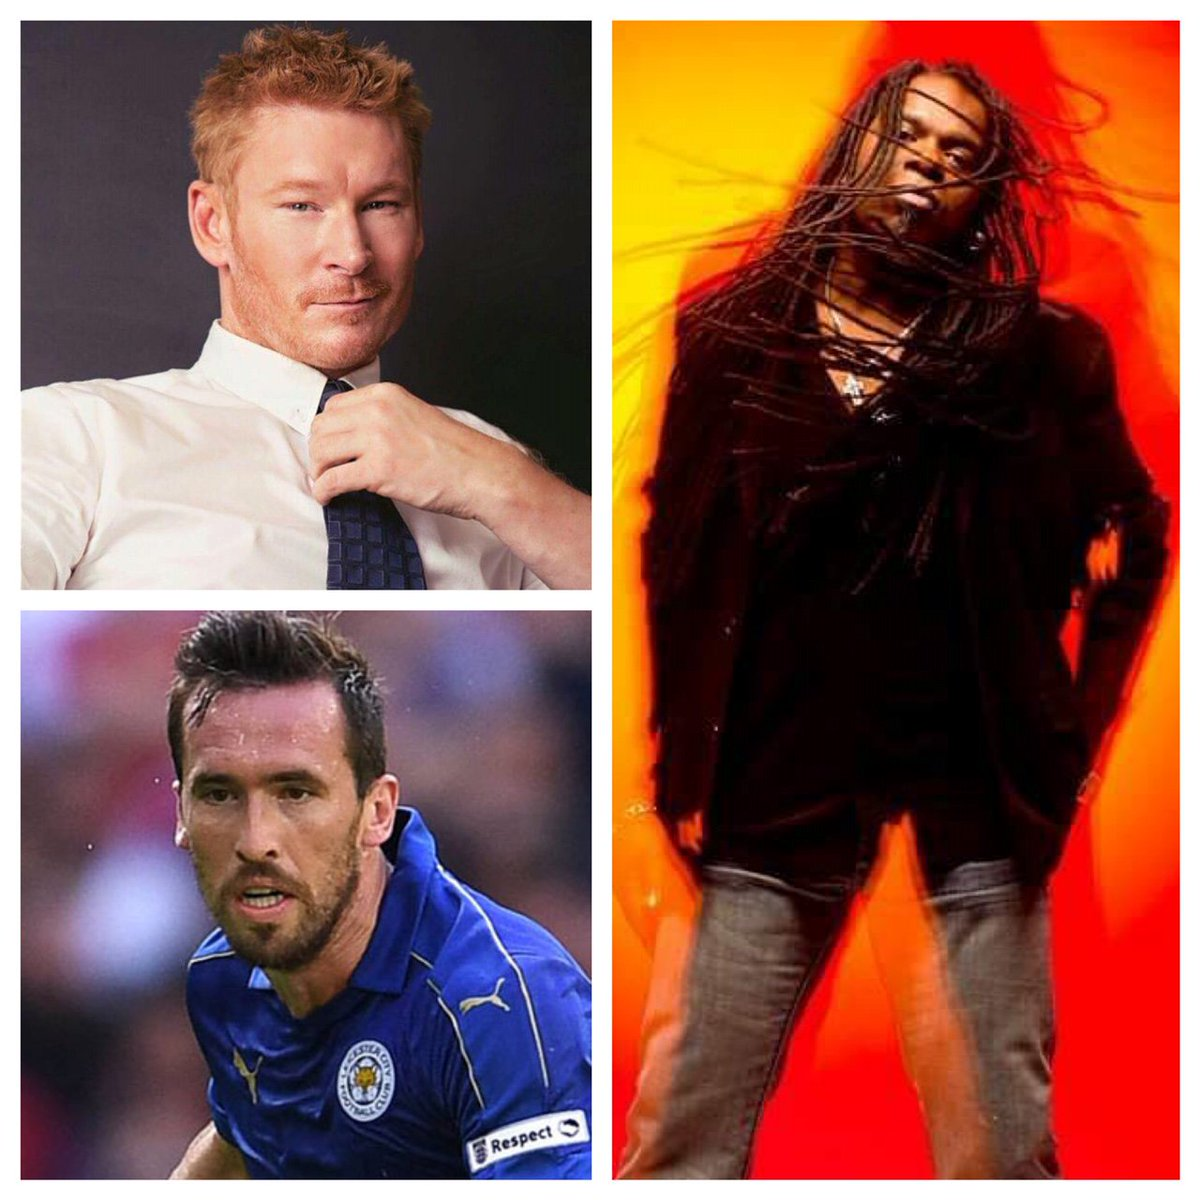 "#PODCAST Episode 173 w/ #BifNaked drummer Chiko Misomali, #LCFC left back Christian Fuchs & #AChristmasStory ""Scut Farkus"" actor ZackWard! http://ow.ly/US2P30mFf1A"